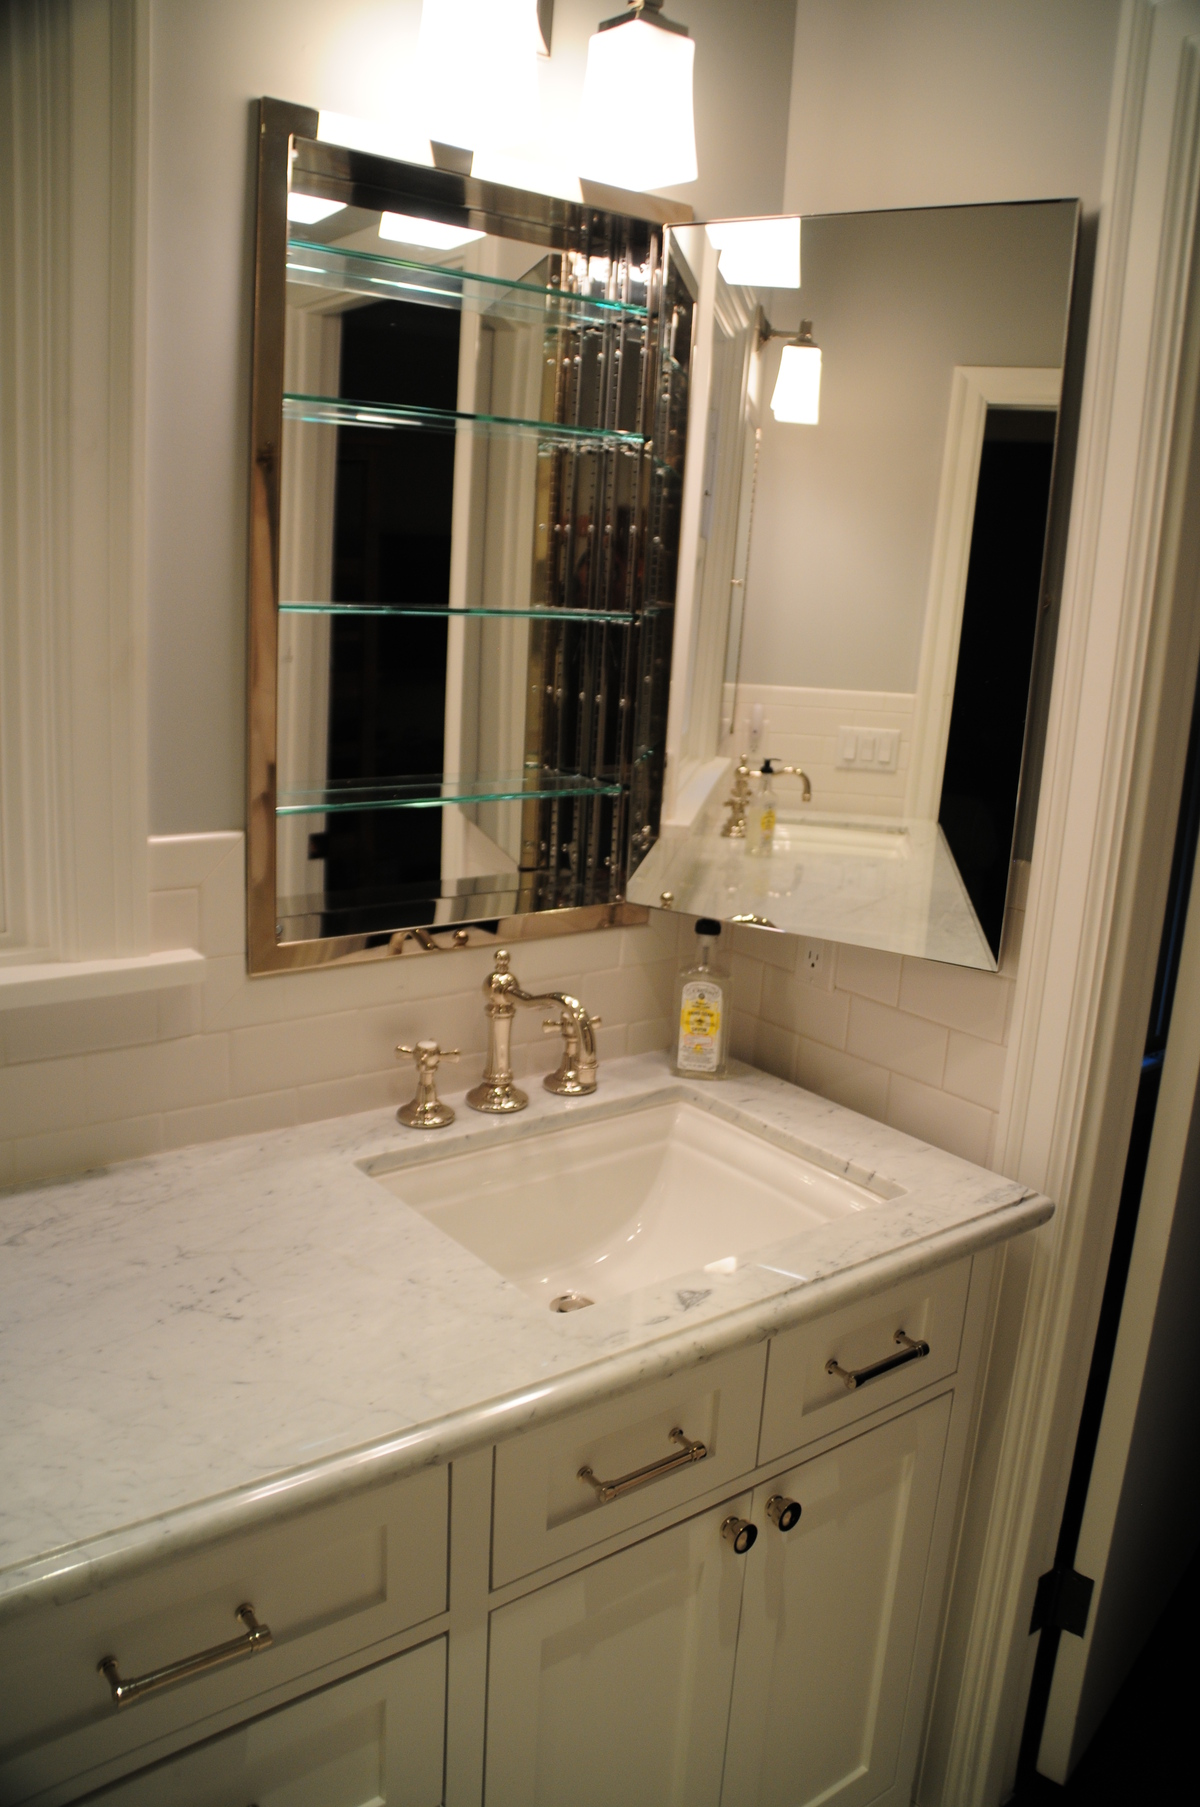 An additional sink with new medicine cabinets created more storage.